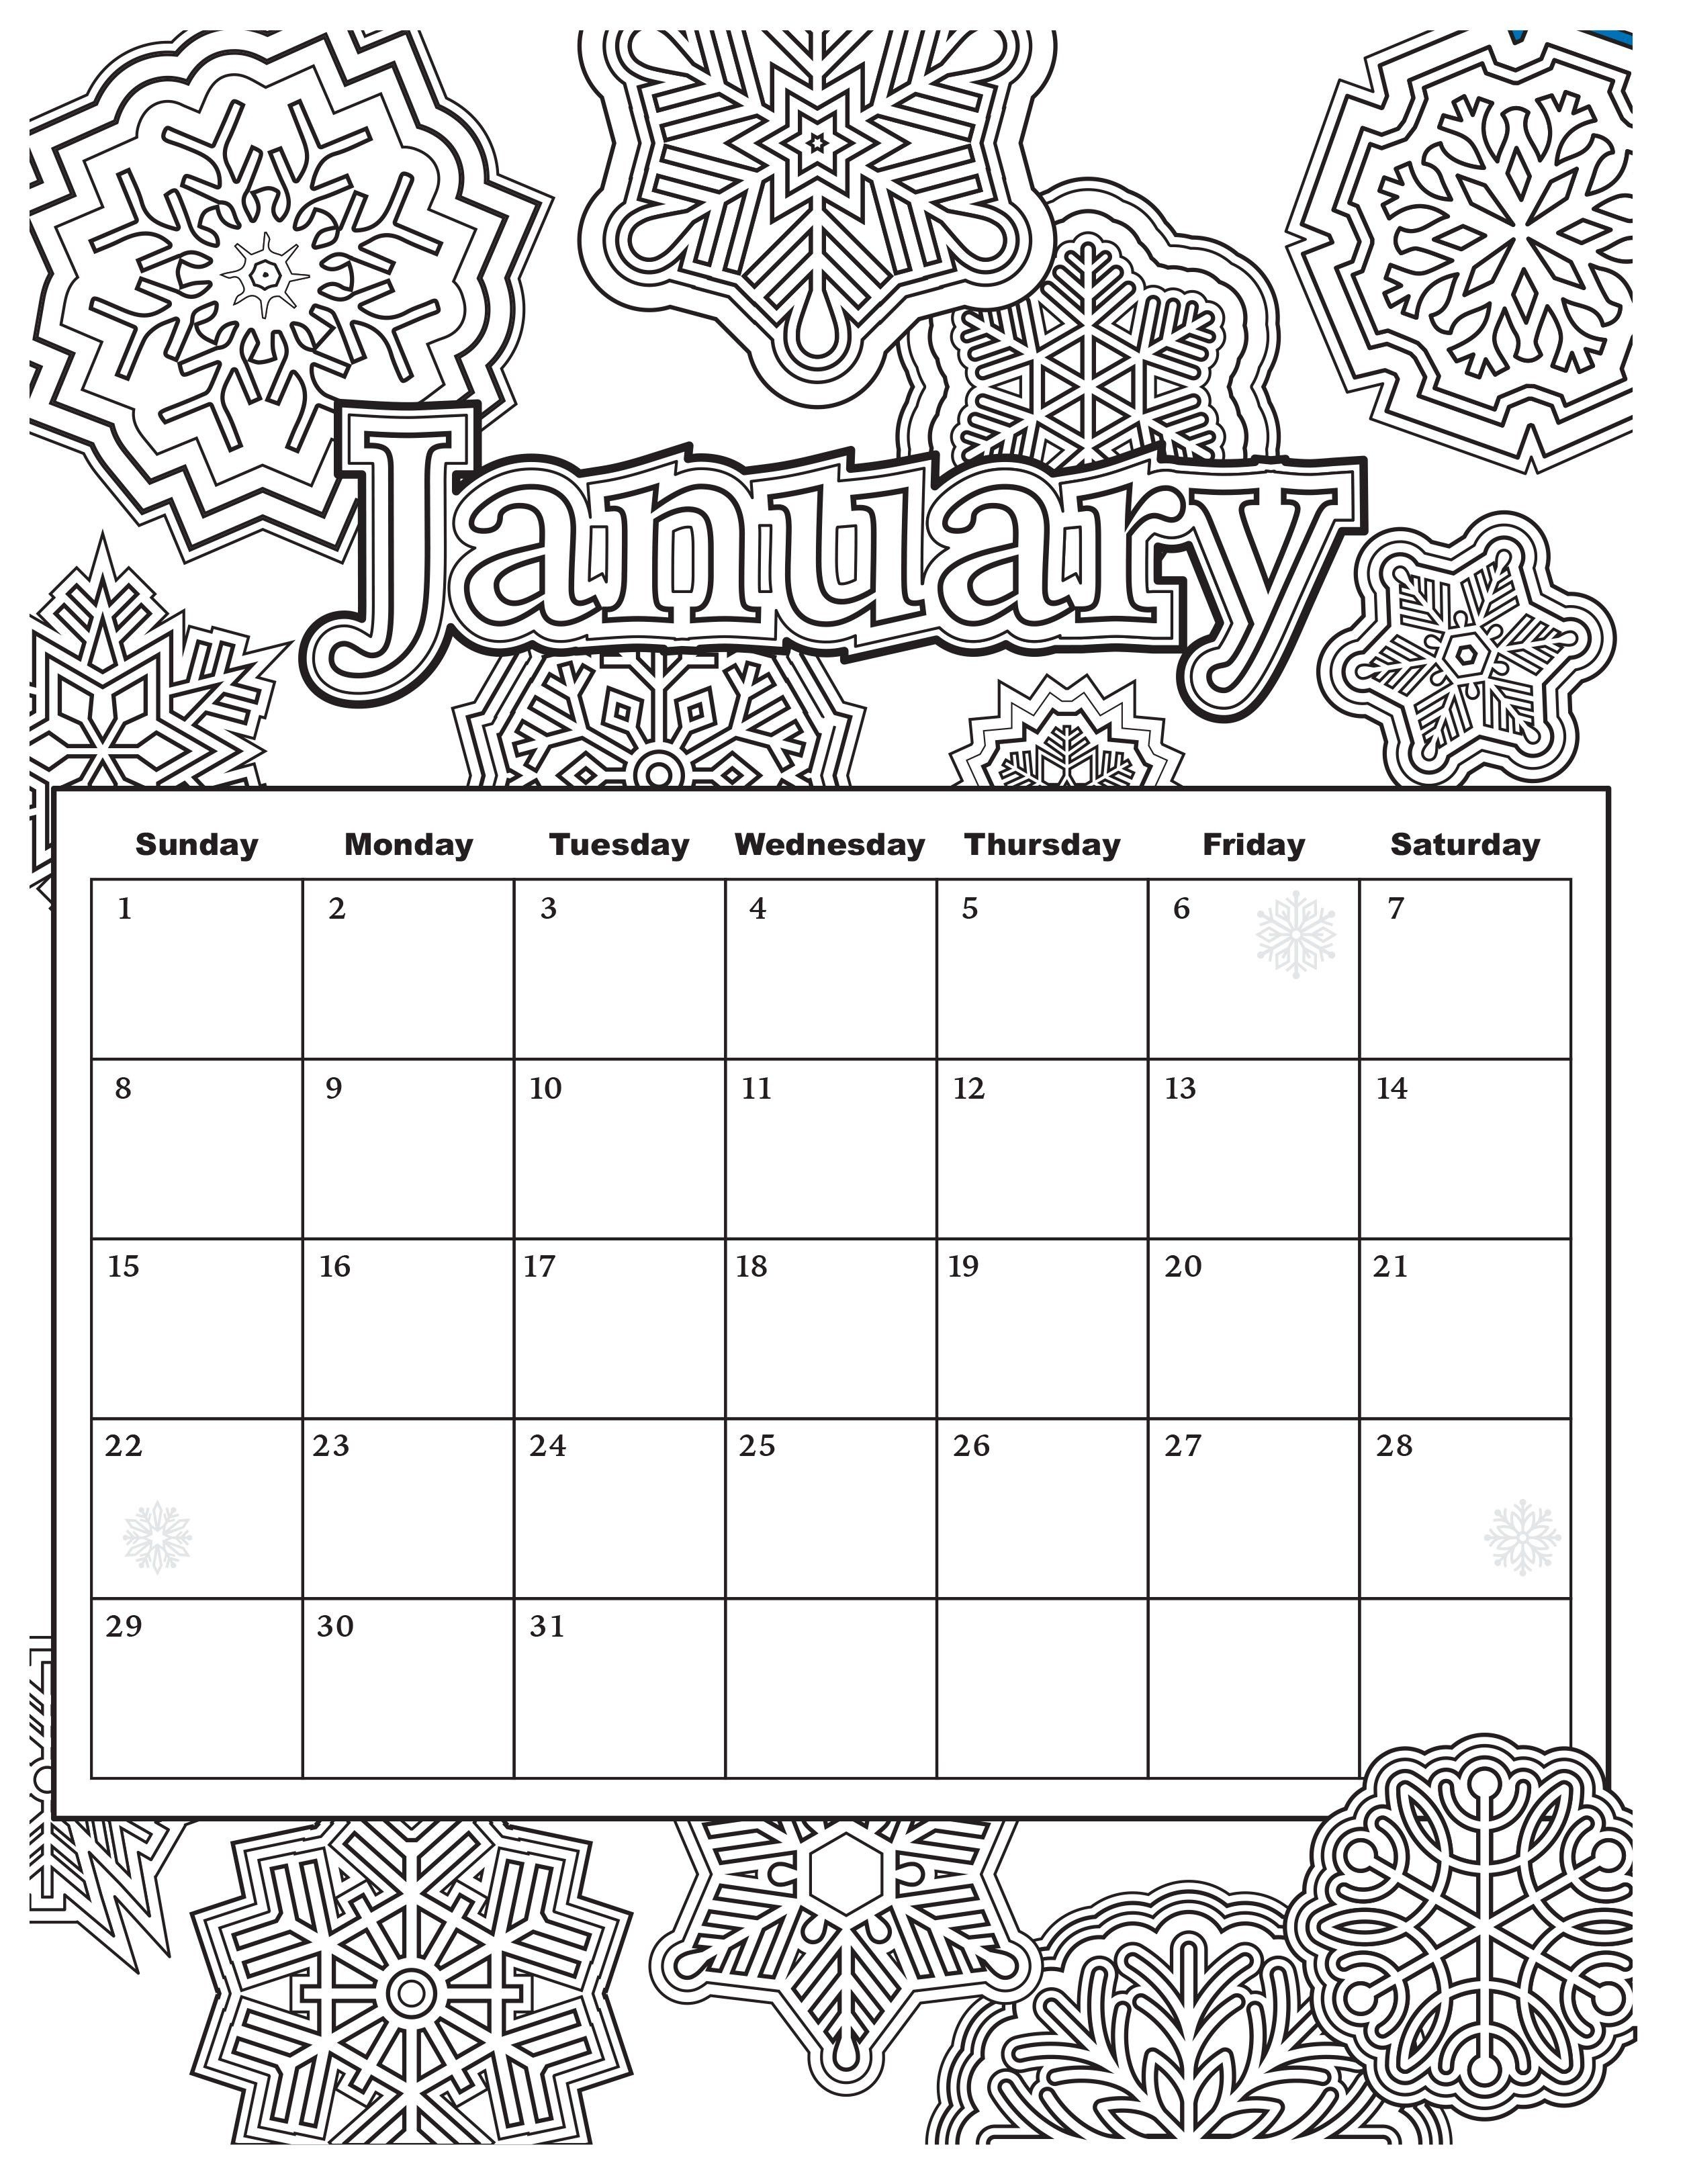 Free Printable Adult October Calendar 2019 Coloring Sheets for Free Printable Adult October Calendar 2019 Coloring Sheets